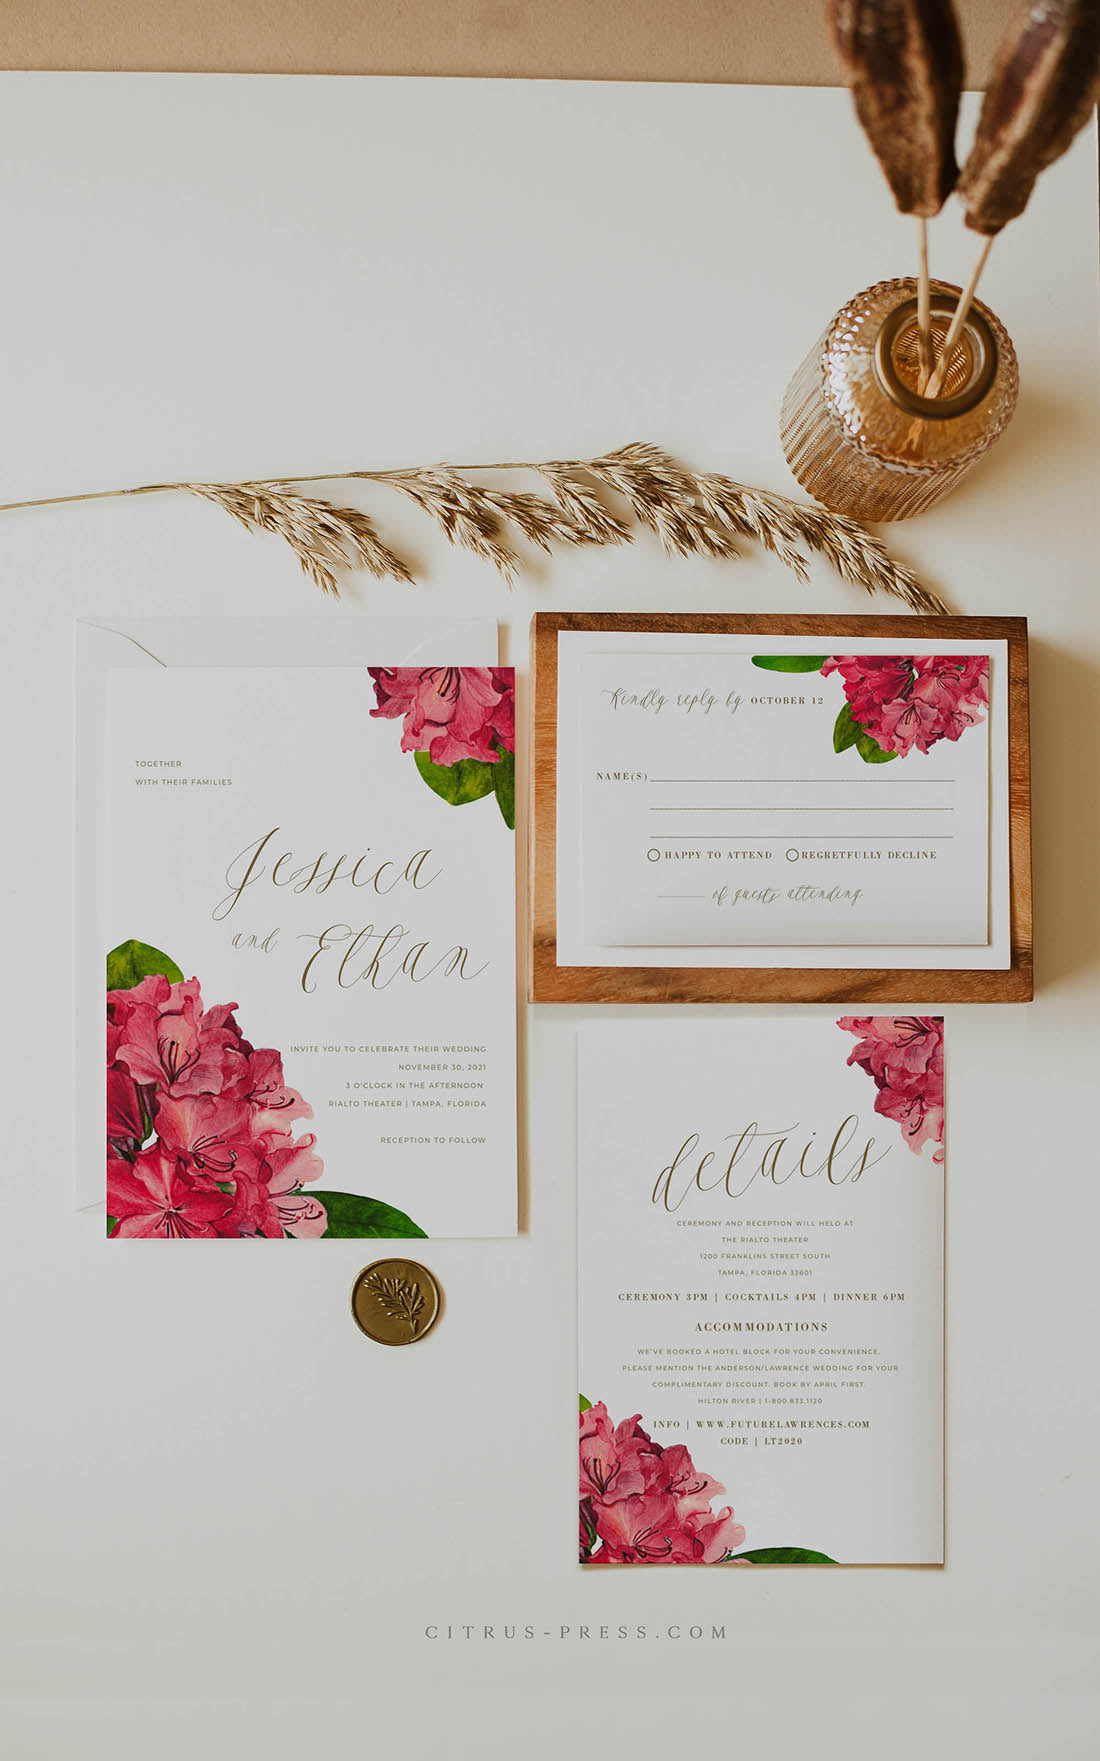 DIY Beach Save The Date Template INSTANT DOWNLOAD Destination Wedding Date Card Printable and Self-Editing Save the Date Invitation